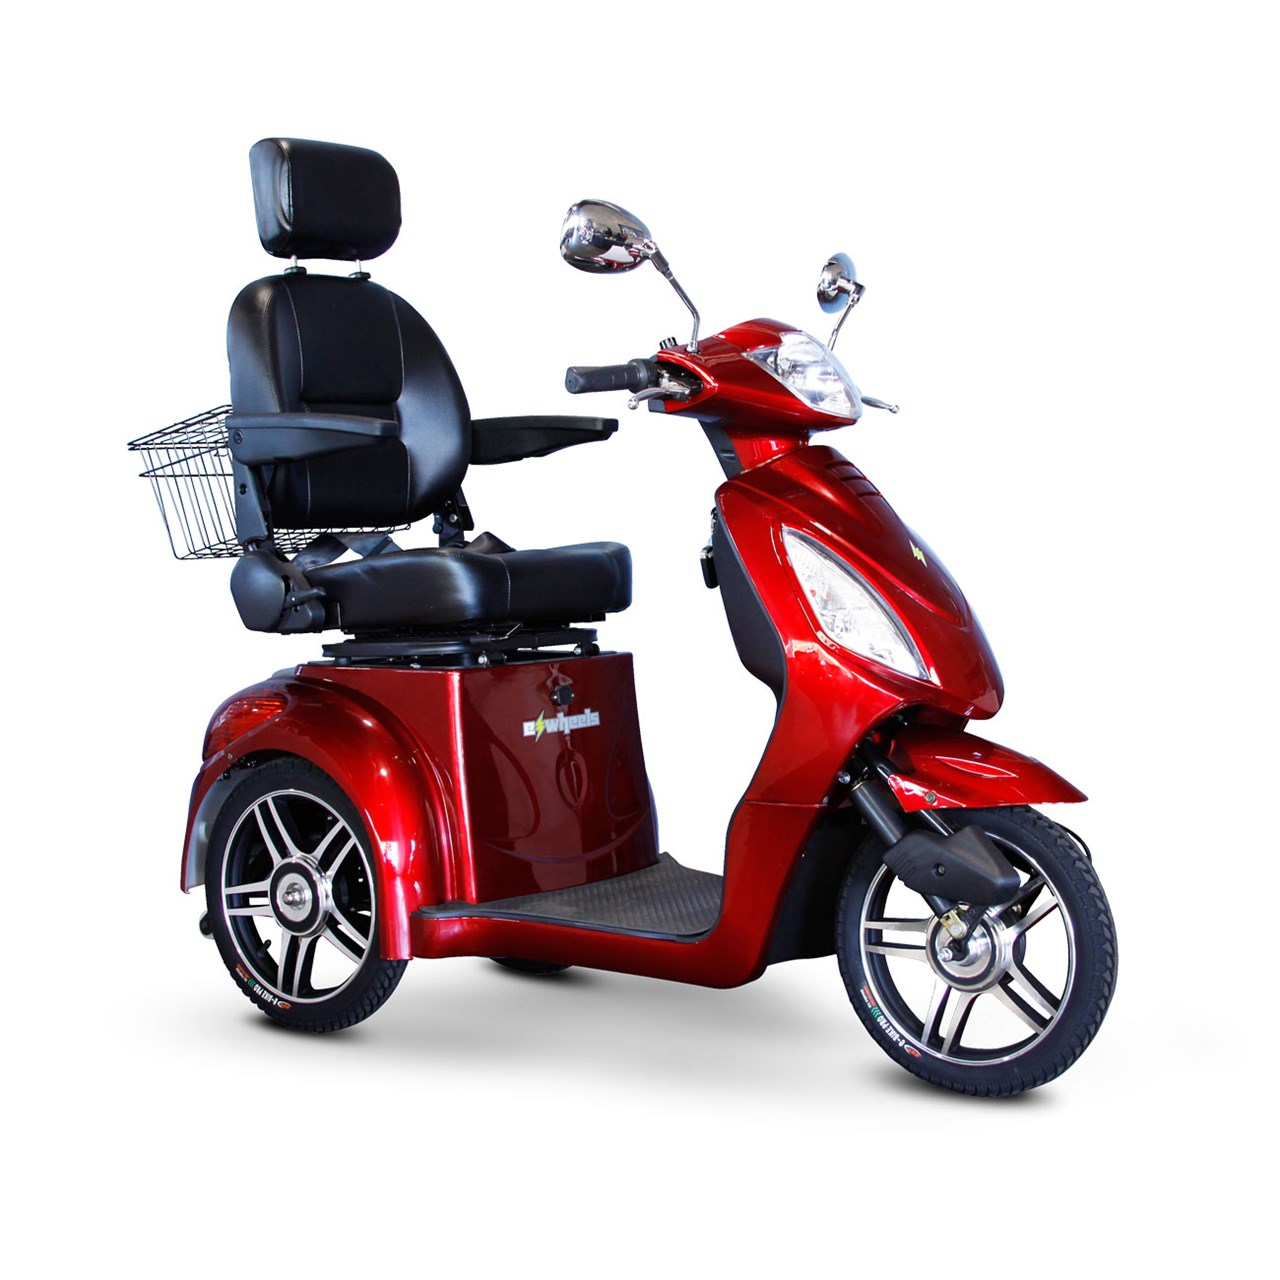 EW 36 Mobility scooter. Red. Up to 18Mph and 45 Miles on a Single charge. Delivers Fully Assembled. Fast Mobility Scoote